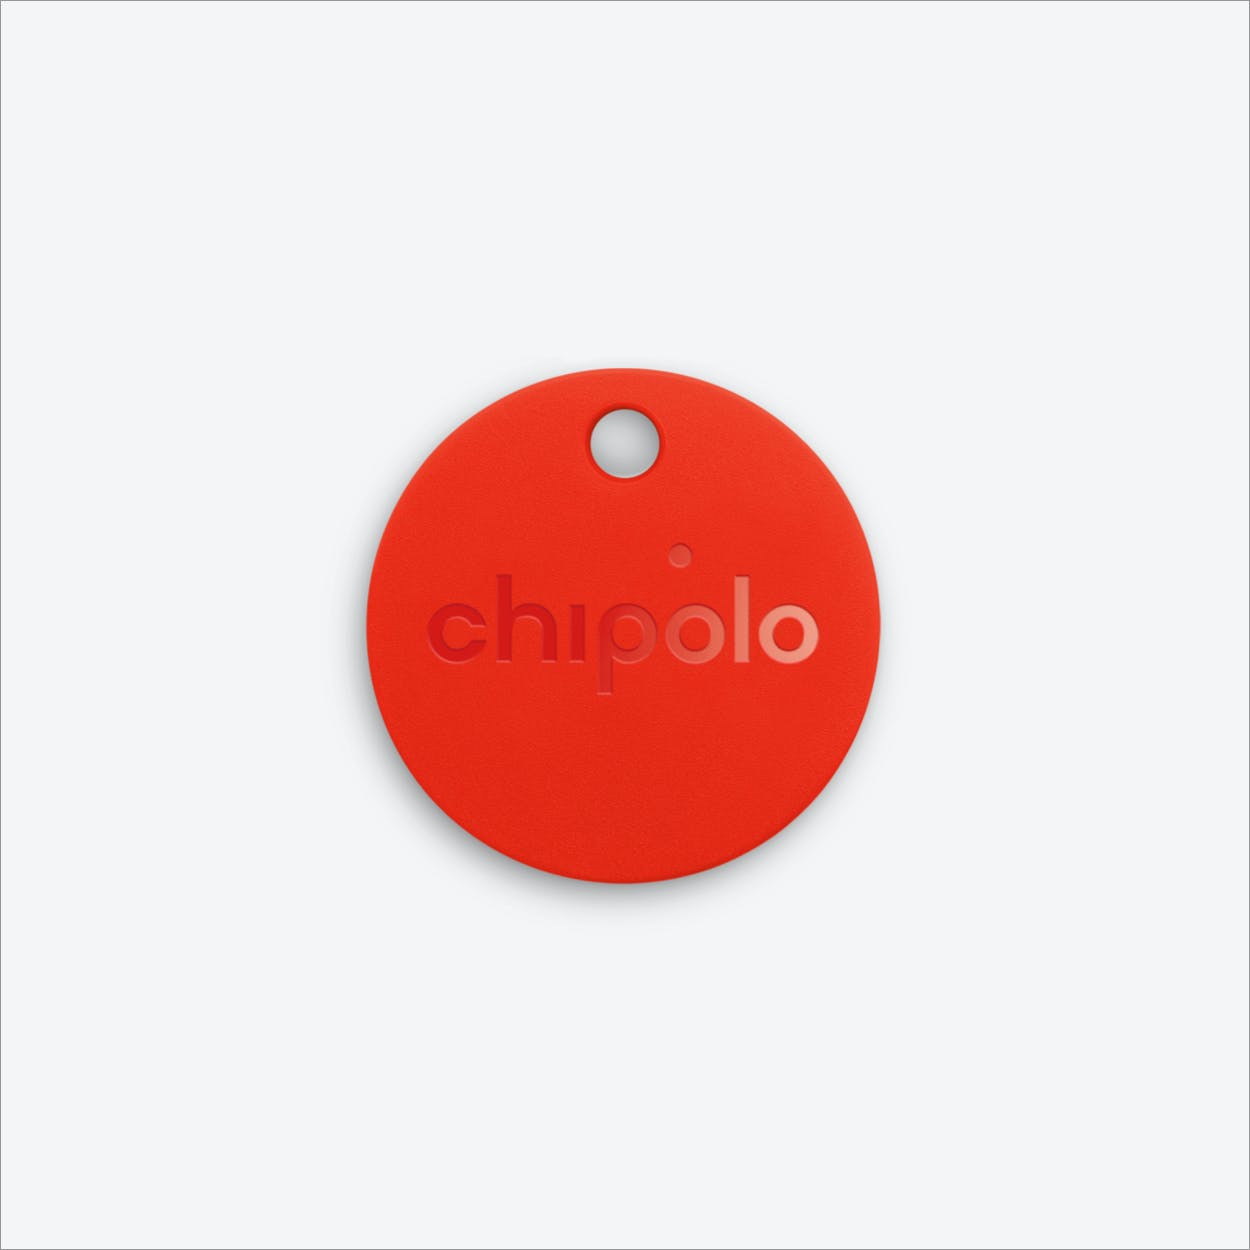 Chipolo Plus 2nd GEN RED